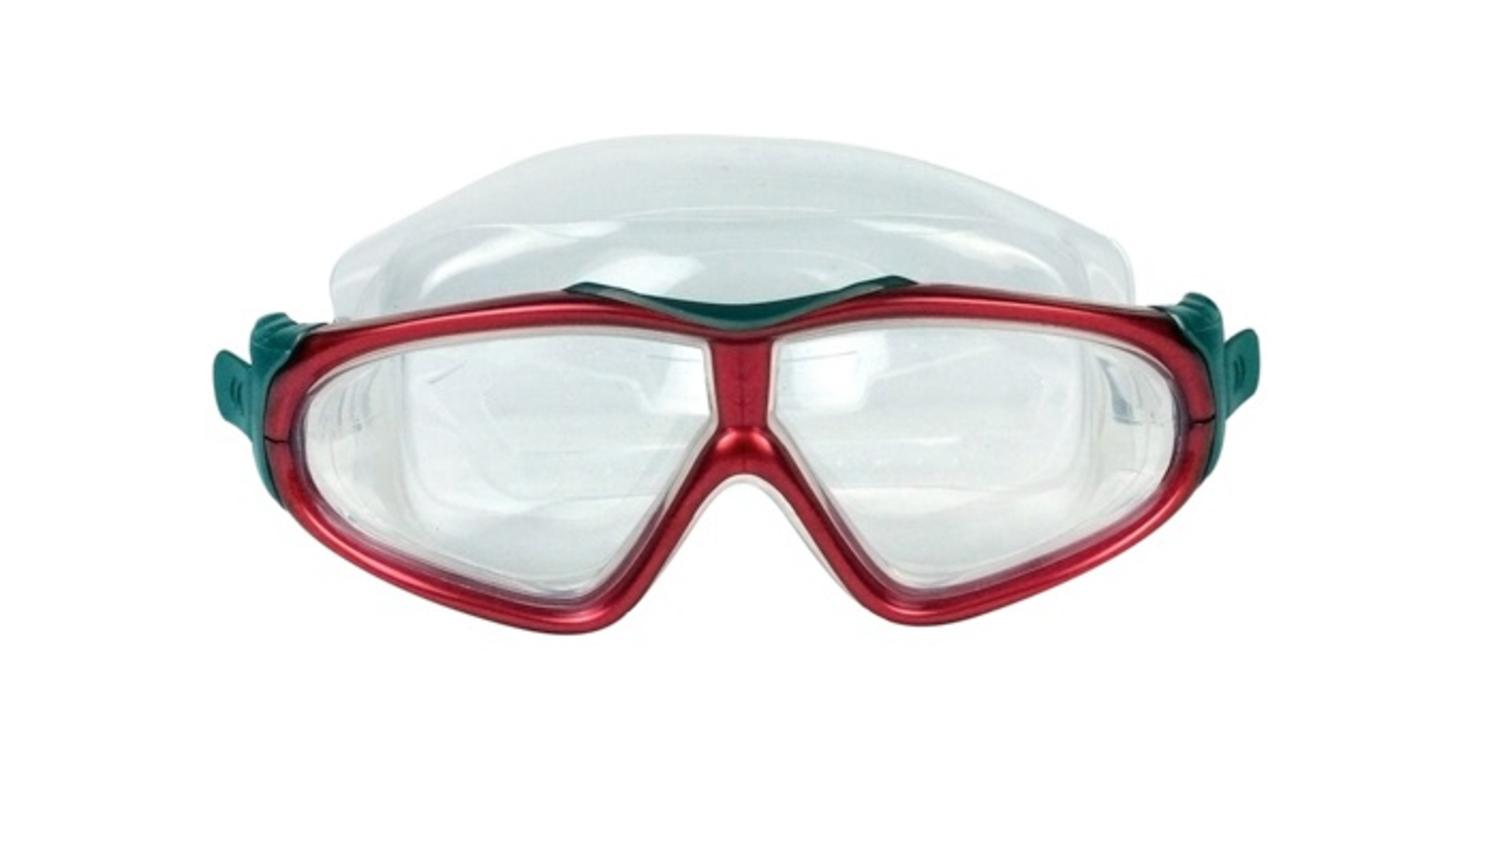 """7"""" EZ Fit DLX Sport Red Goggles Swimming Pool Accessory for Adults and Children by Swim Central"""